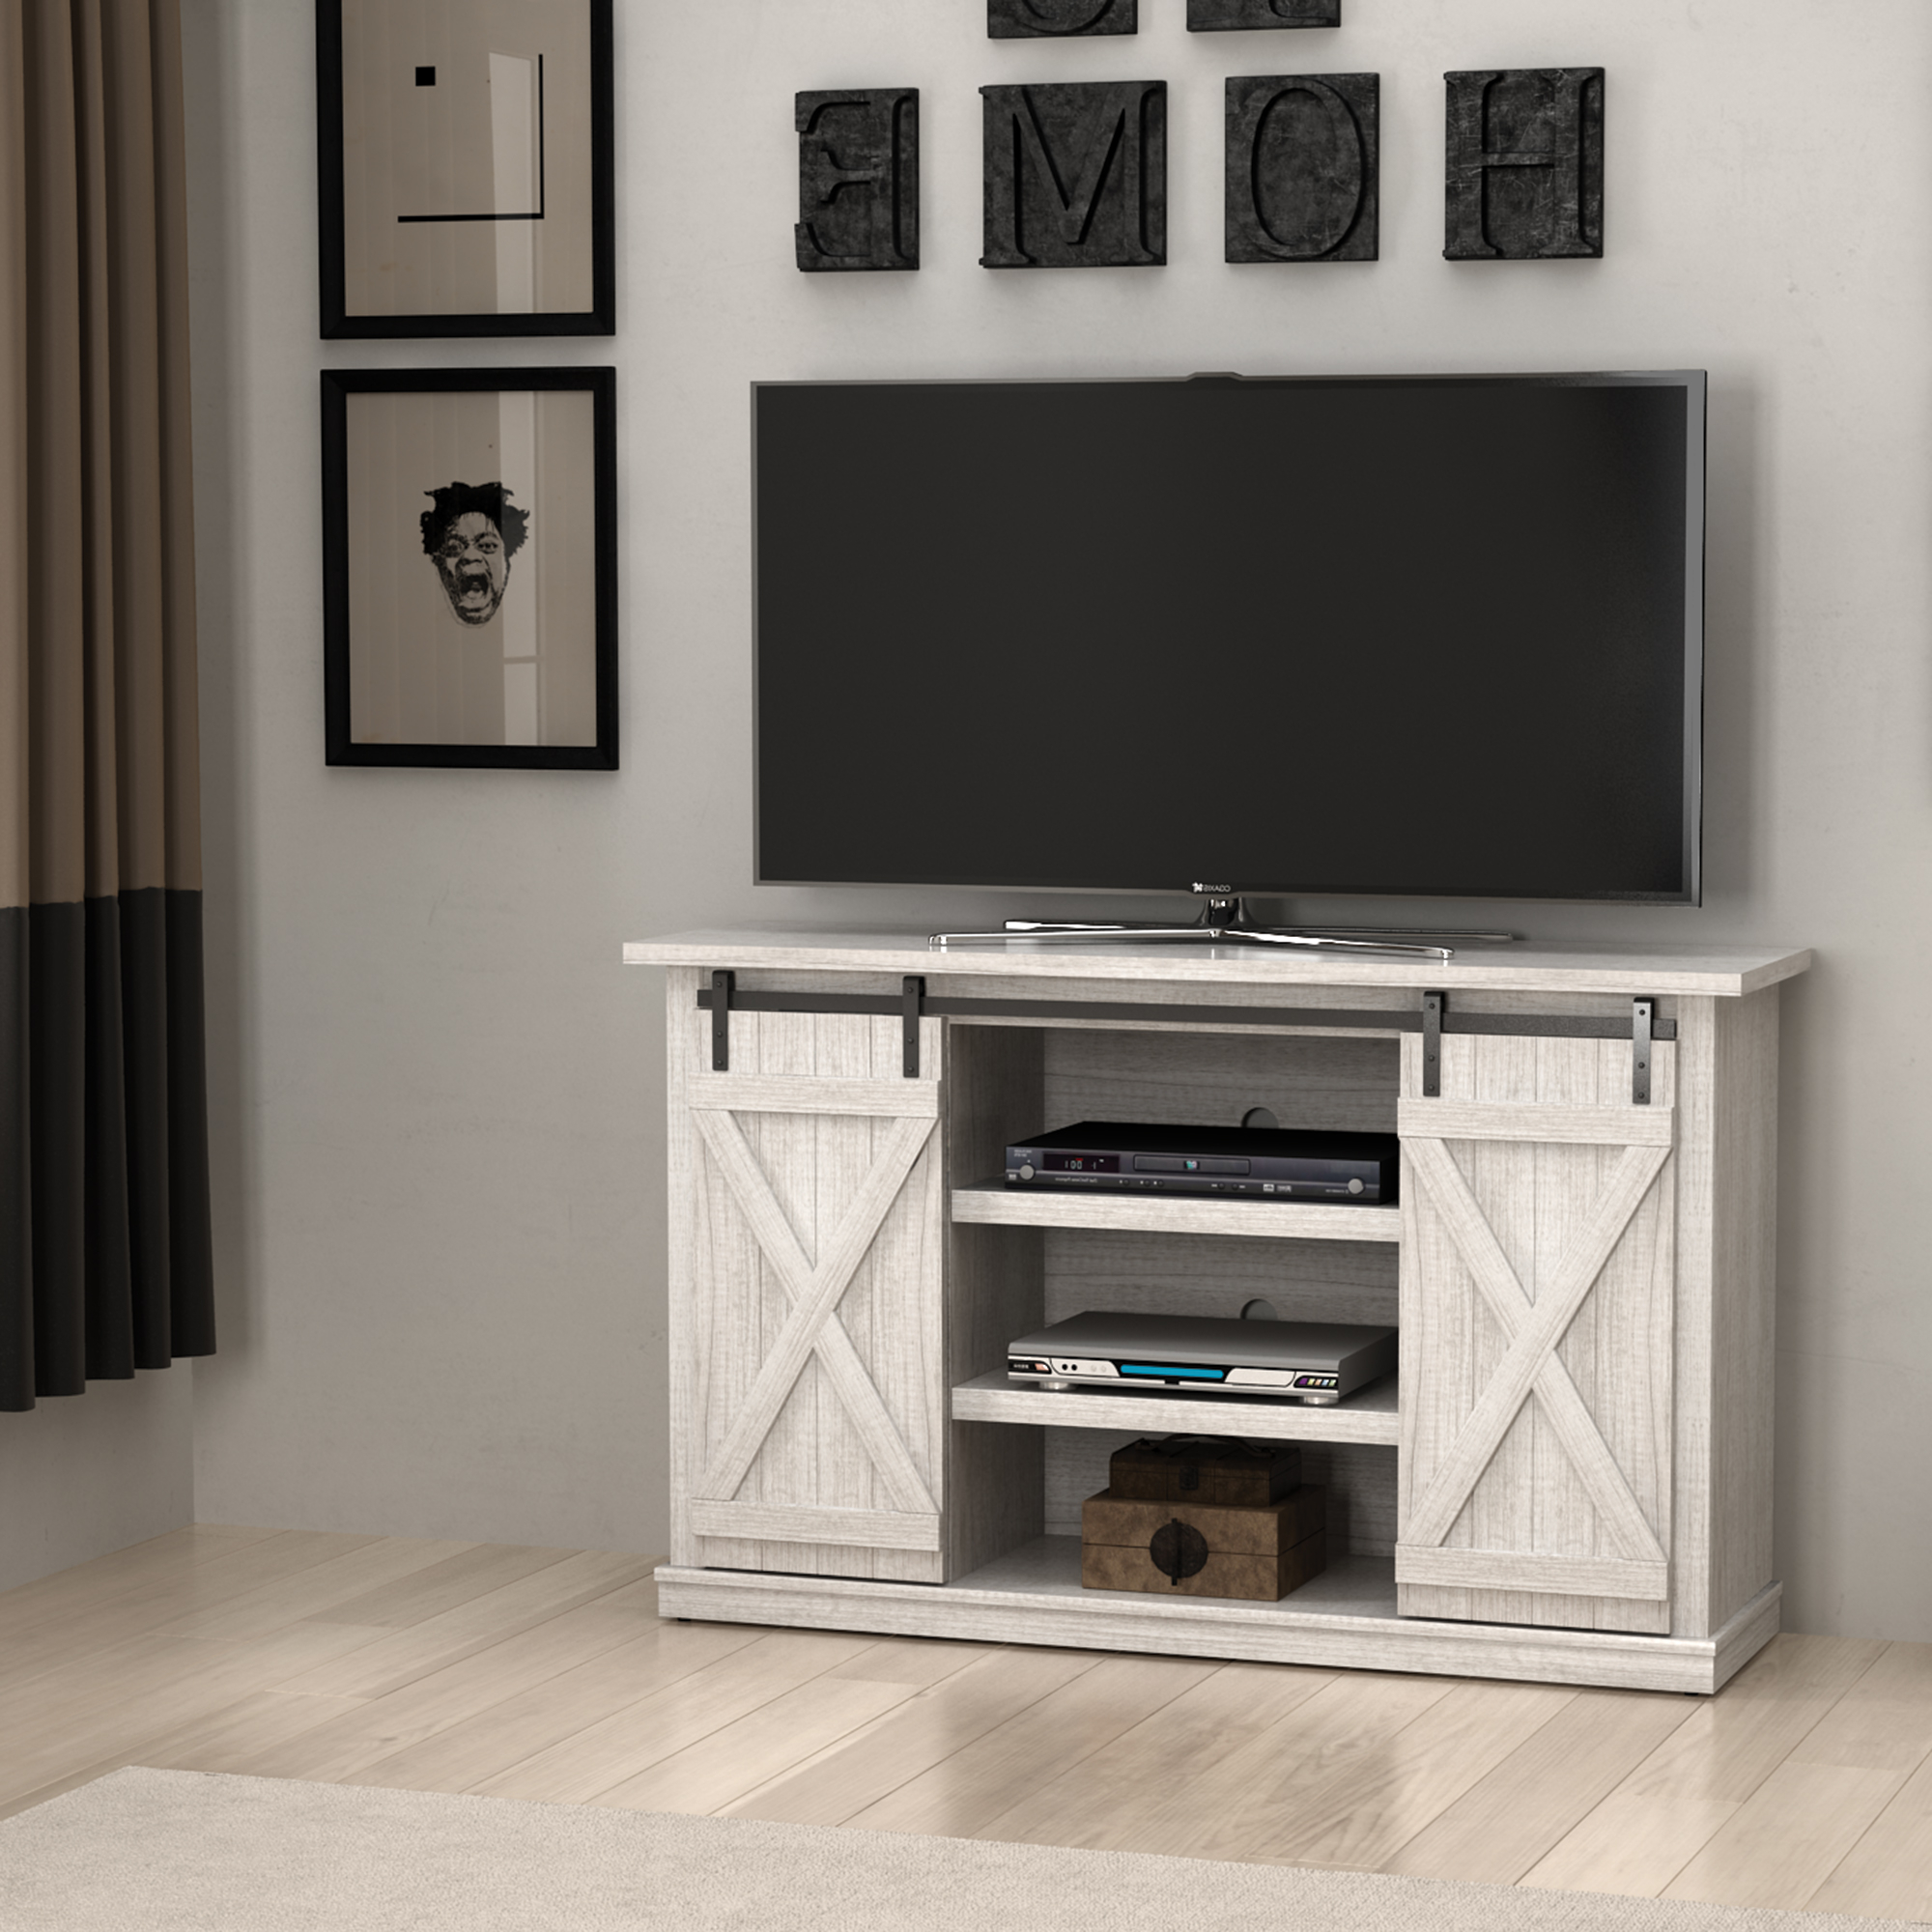 Cottonwood Tv Stand For Tvs Up To 60 Inches With Sliding Throughout Farmhouse Sliding Barn Door Tv Stands For 70 Inch Flat Screen (View 5 of 20)